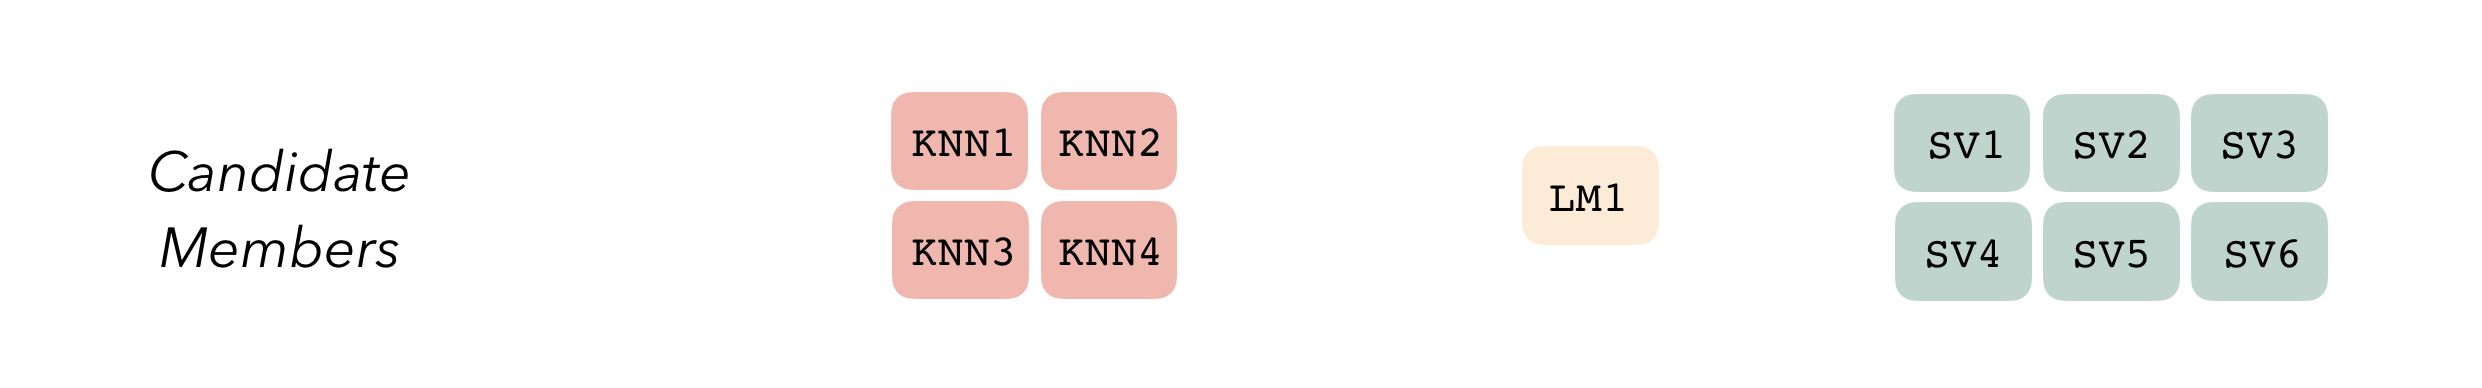 A diagram representing 'candidate members' generated from each model definition. Four salmon-colored boxes labeled 'KNN' represent K-nearest neighbors models trained on the resamples with differing hyperparameters. Similarly, the linear regression (LM) model generates one candidate member, and the support vector machine (SVM) model generates six.